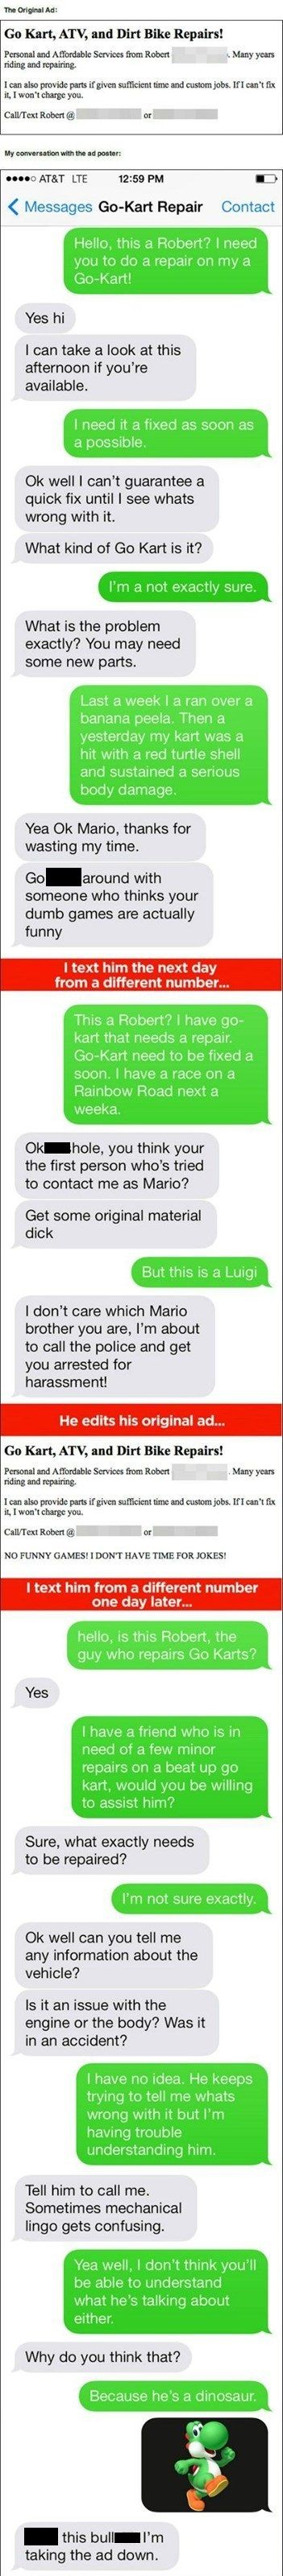 How These Guys Troll People On Craigslist Is Absolutely Hilarious 14